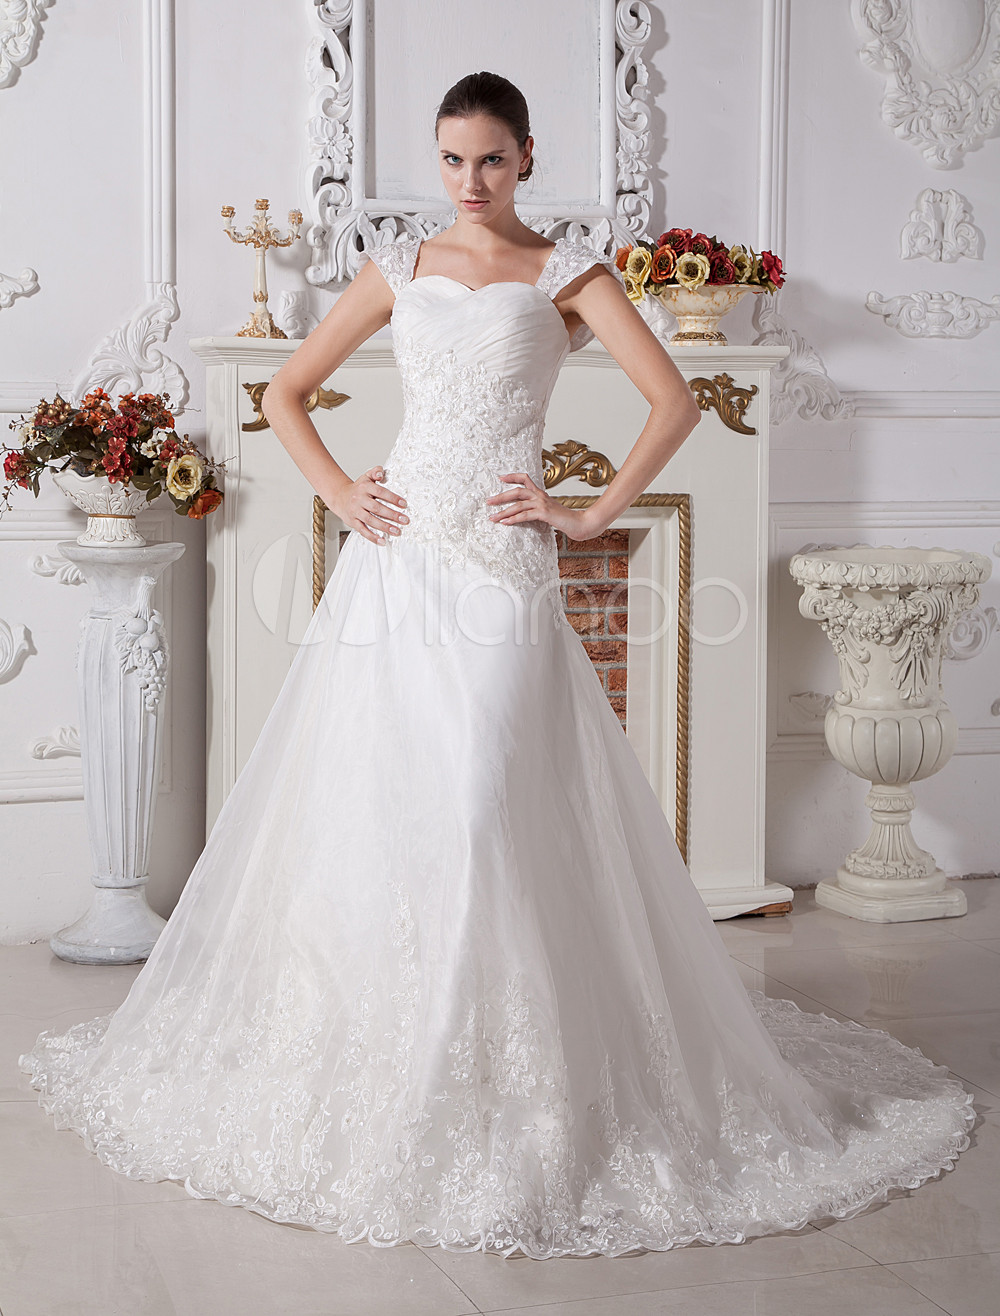 White A-line Sweetheart Cap Sleeves Lace Satin Wedding Dress photo